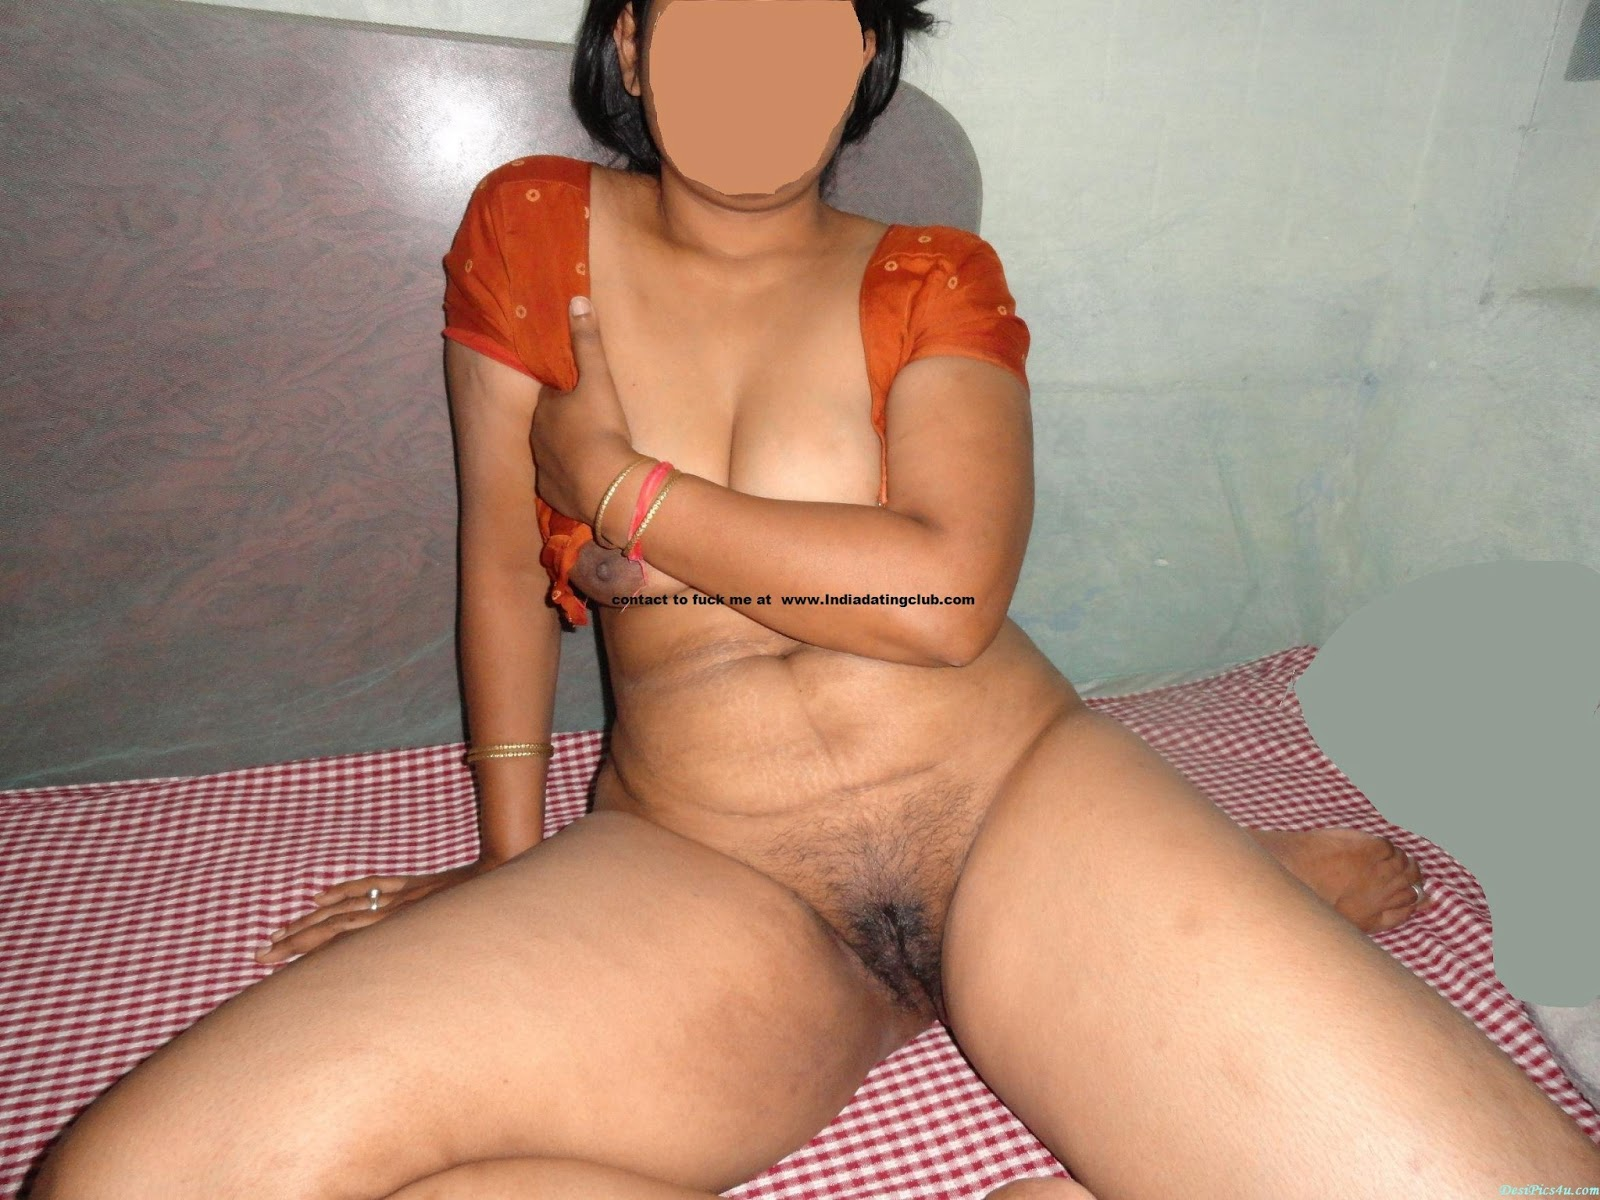 Indian-women-girls-contact-numbers contactindians